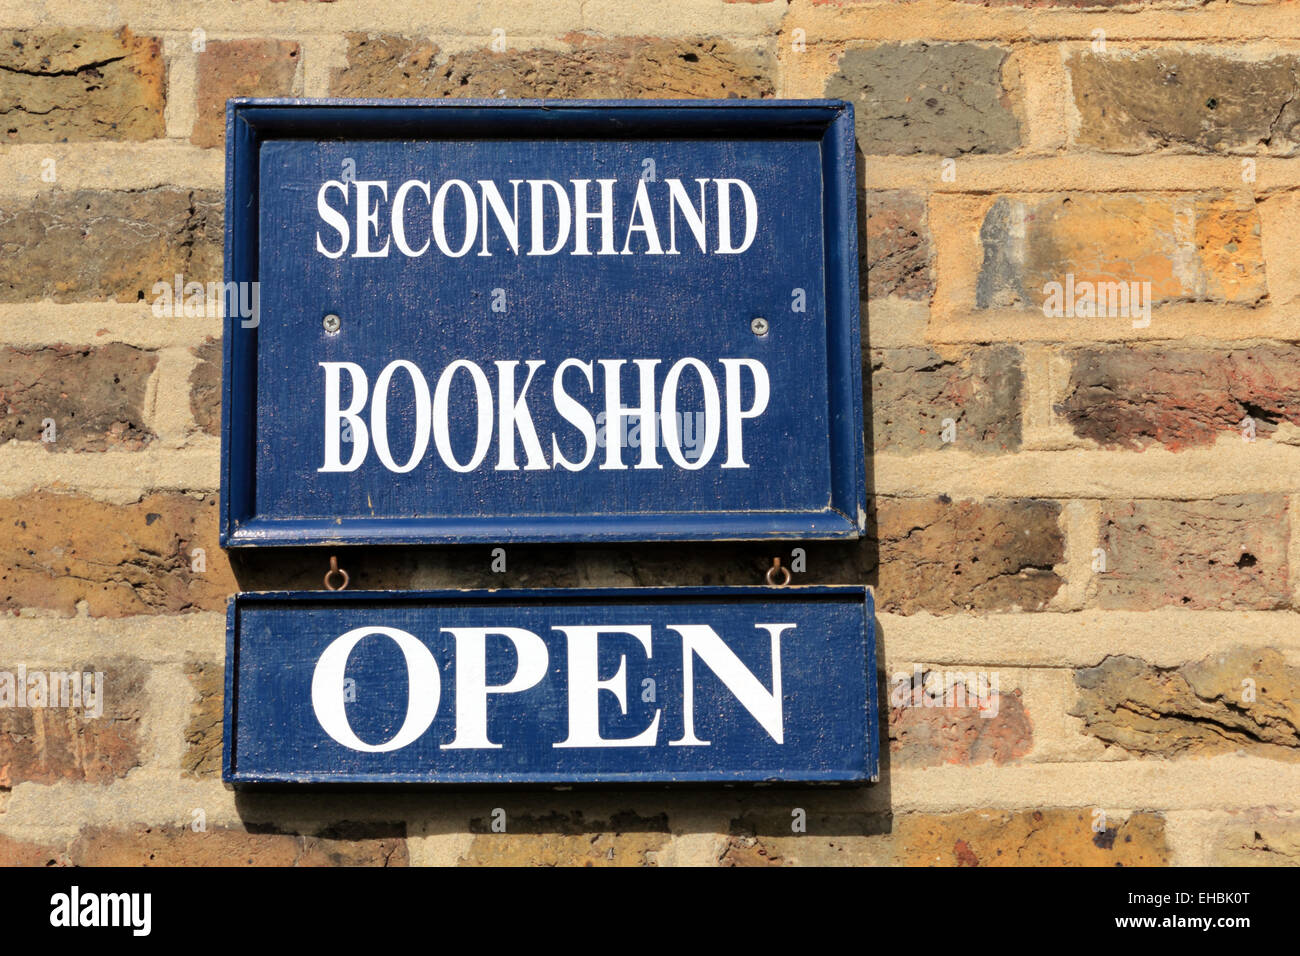 Secondhand Bookshop Open - Stock Image